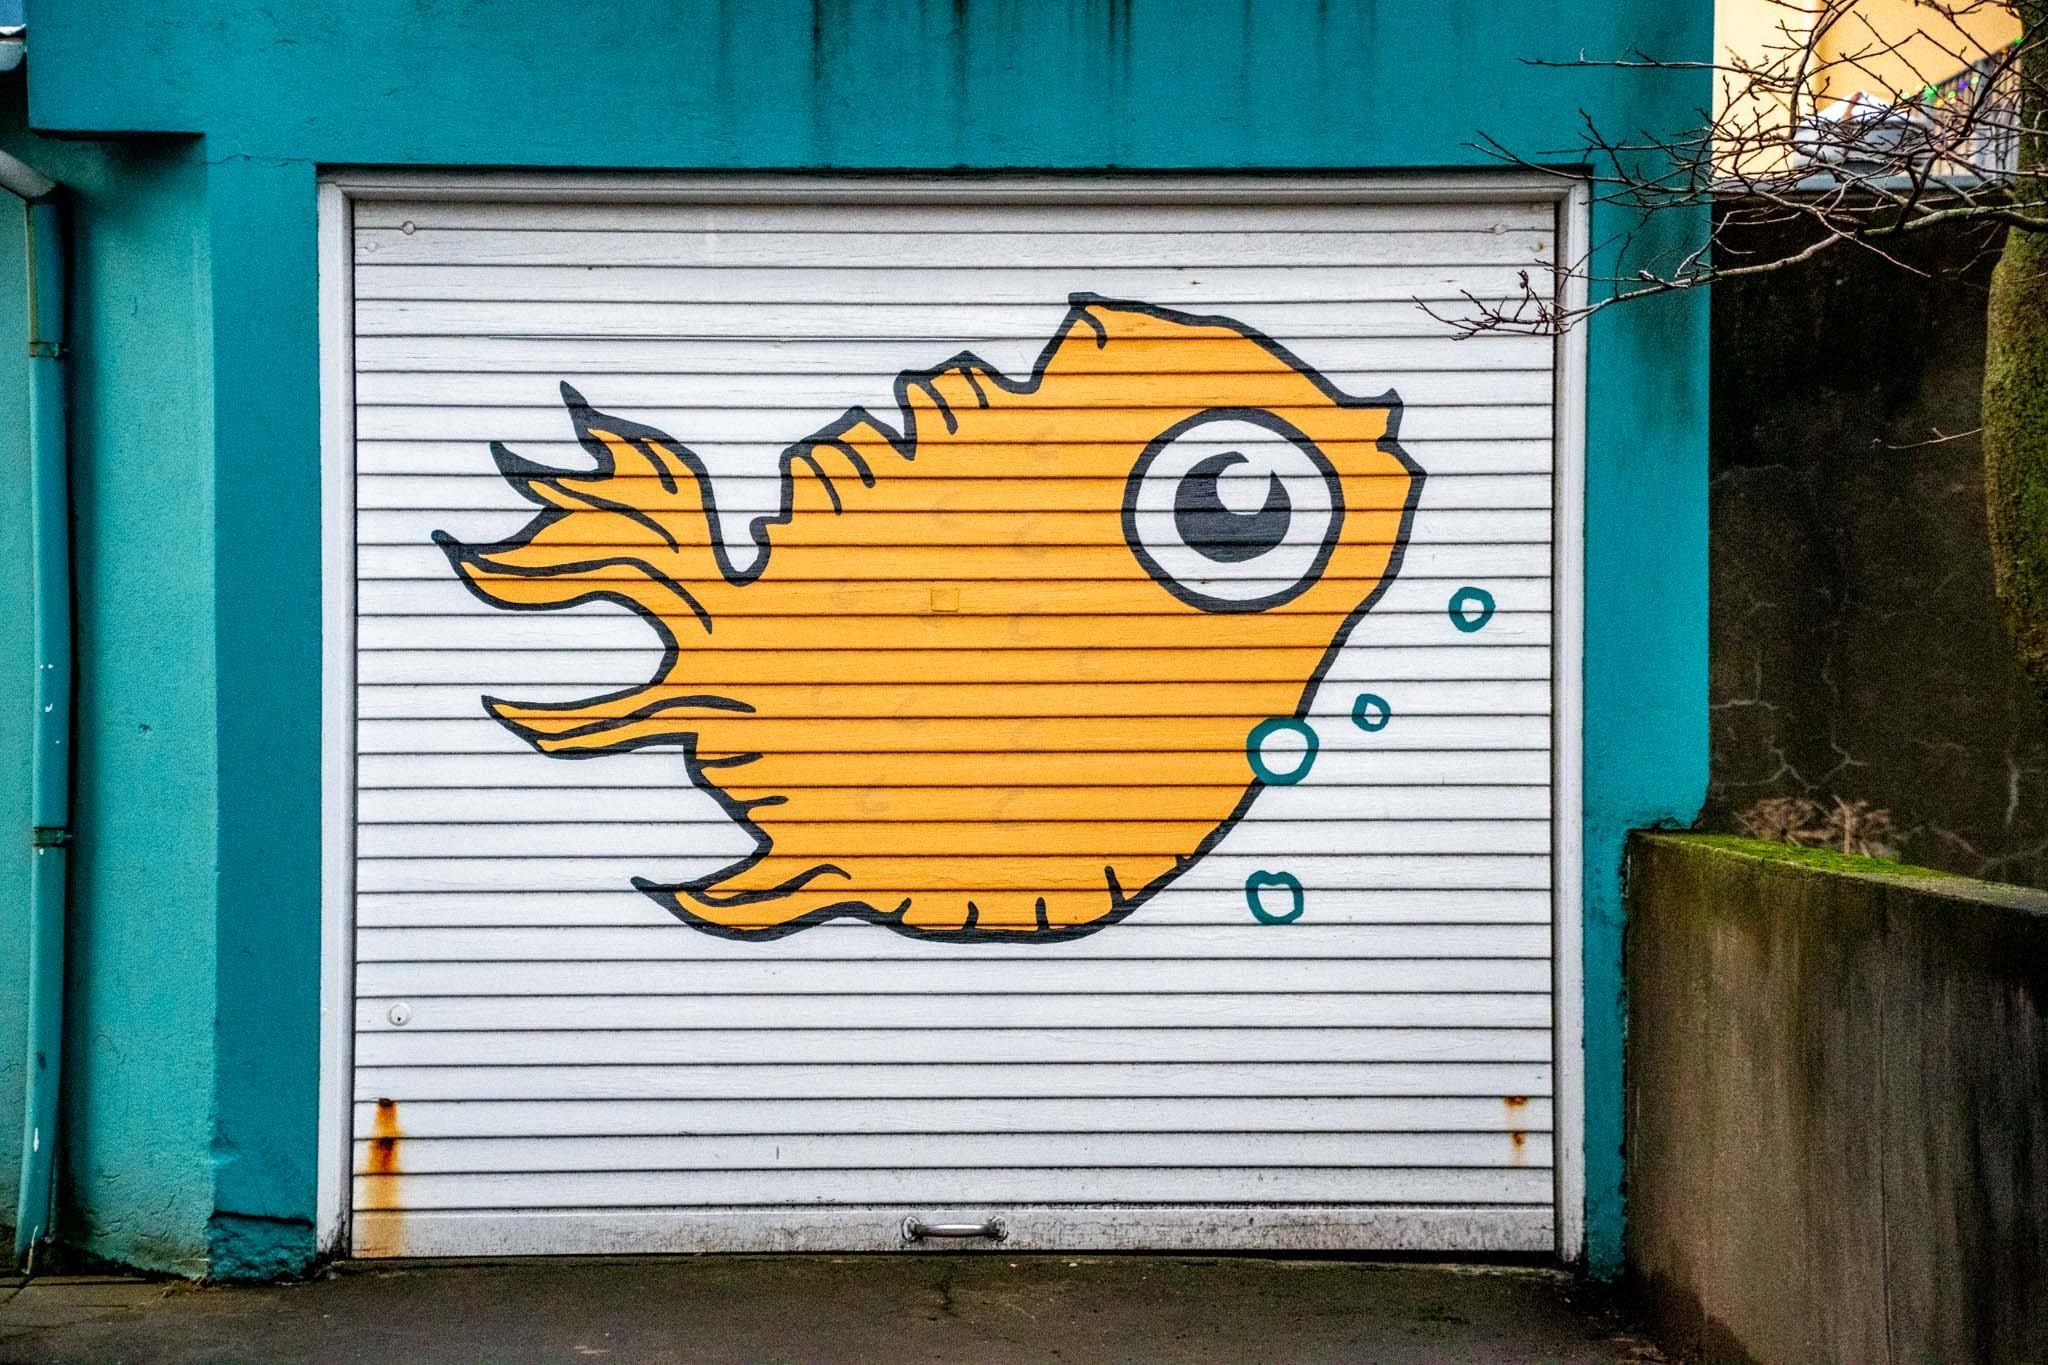 A fish mural in the shape of Iceland on a garage down in downtown Reykjavik.